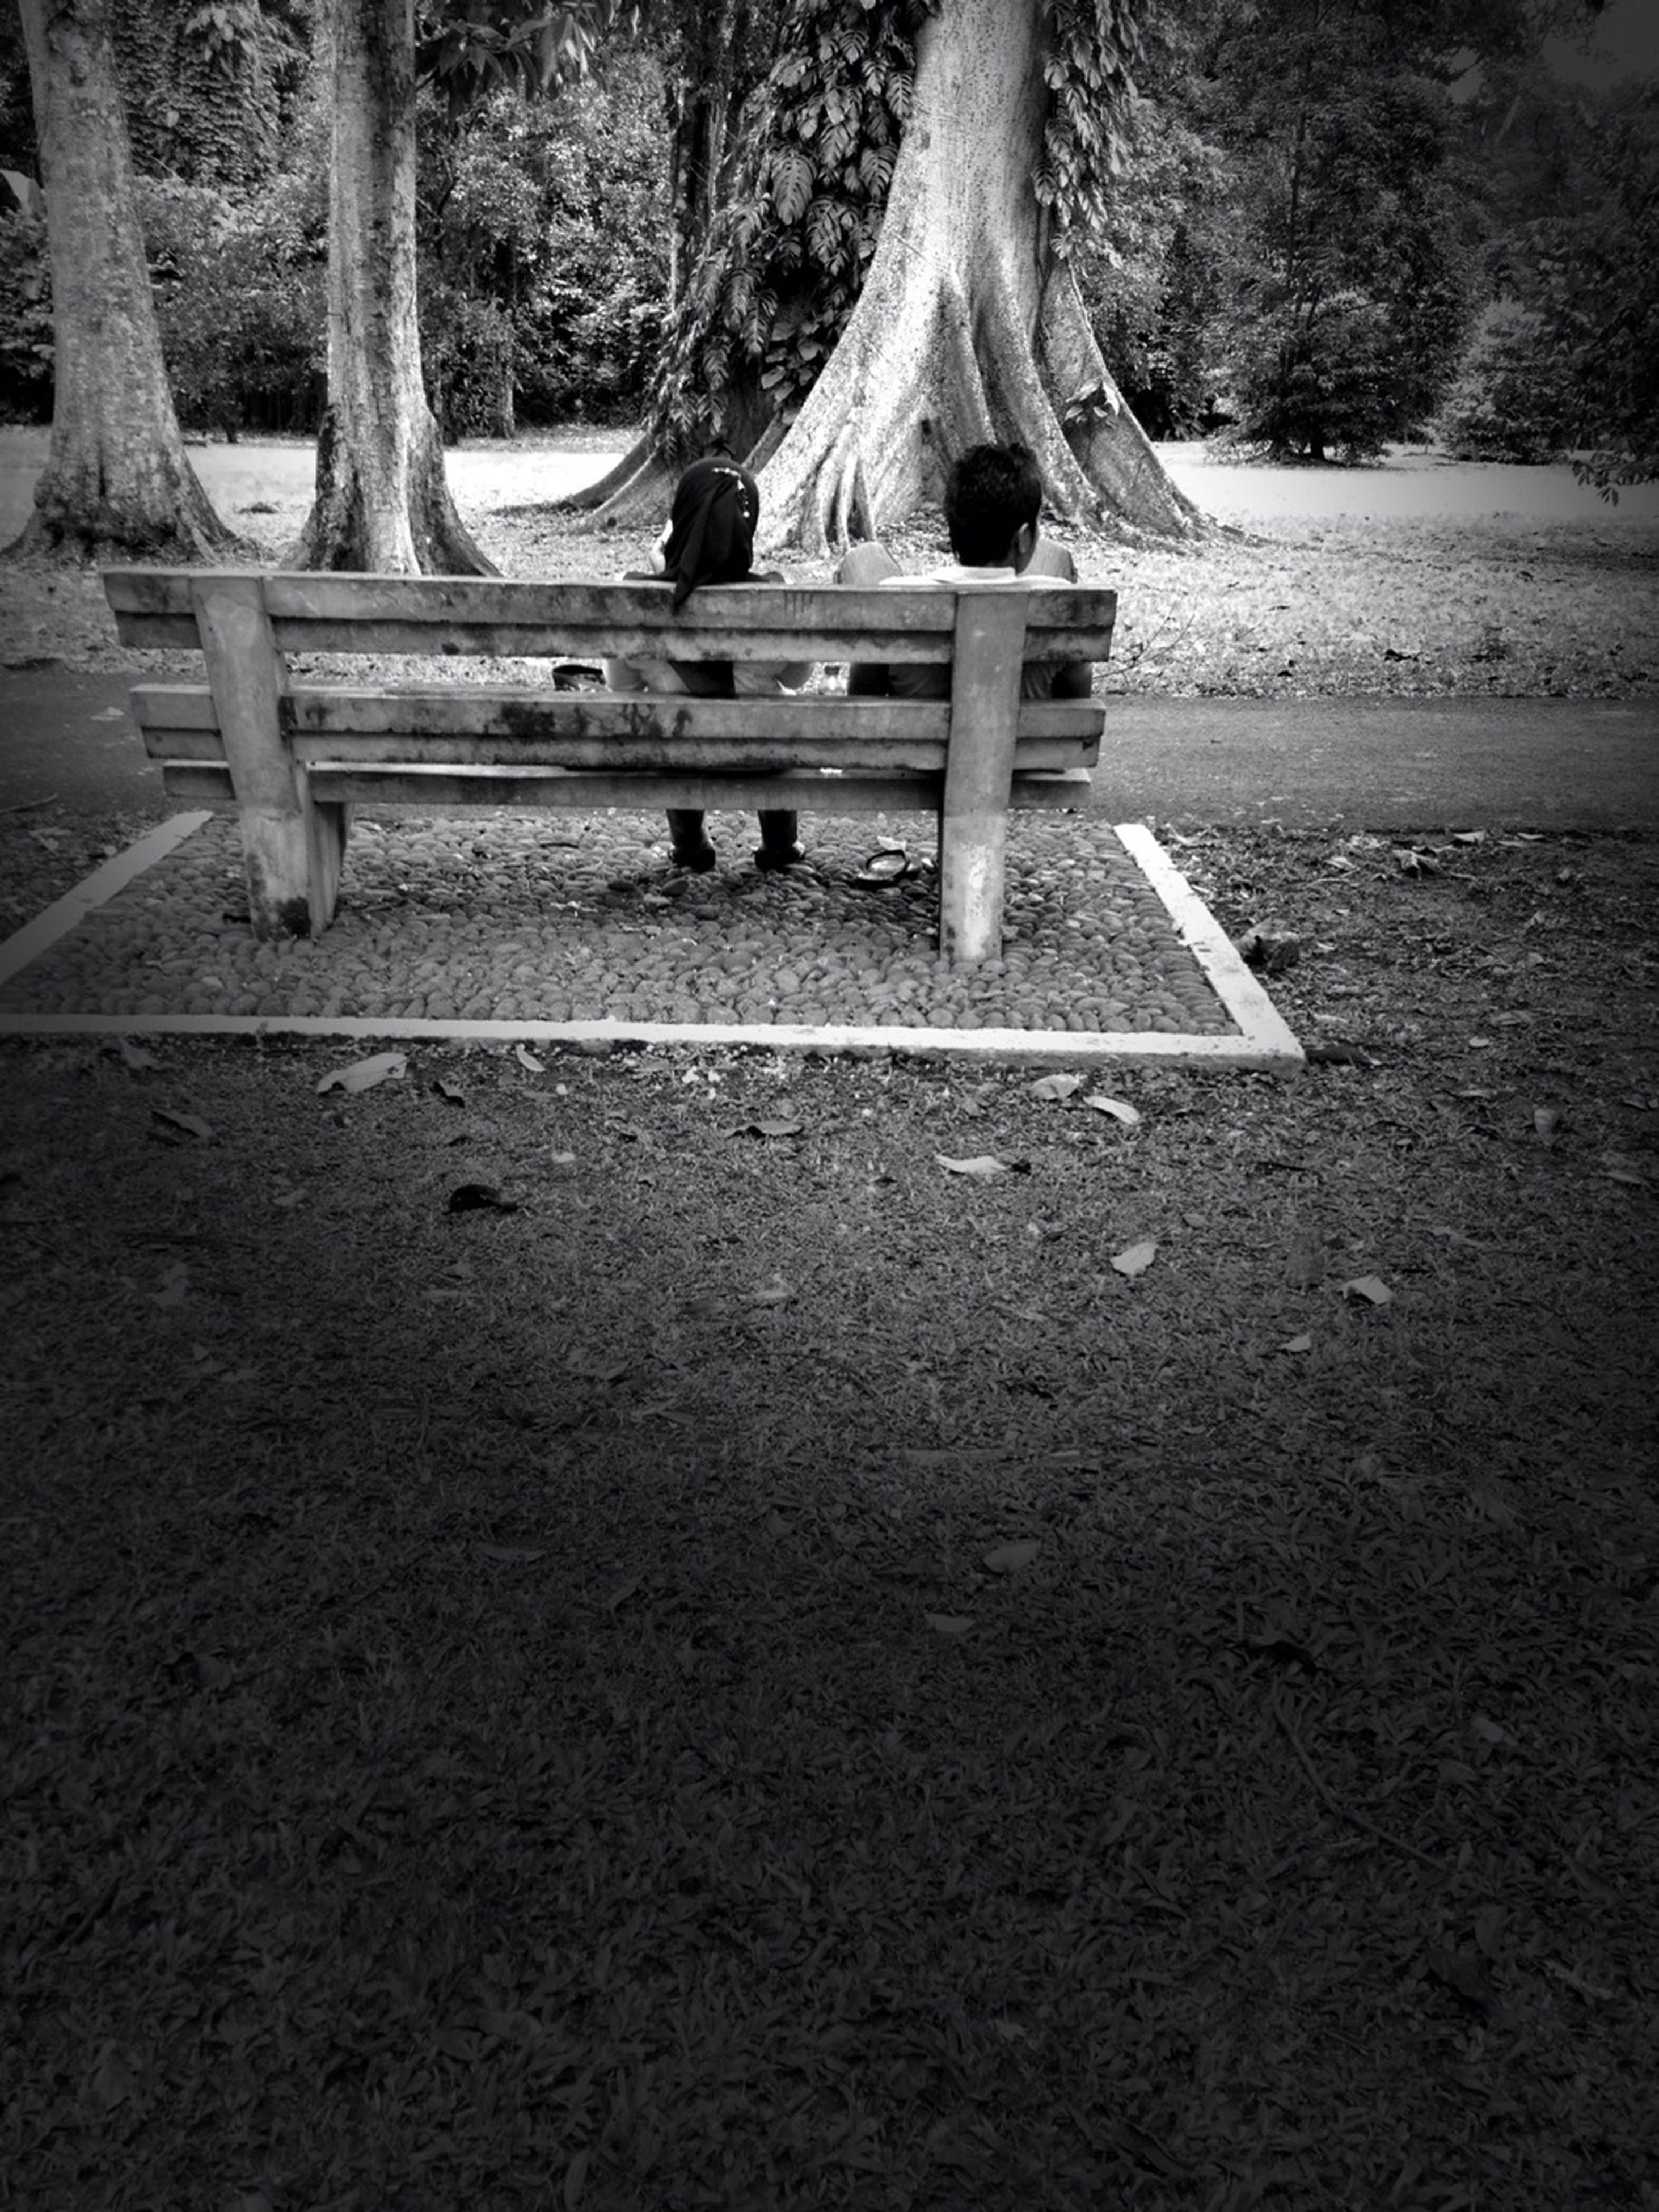 tree, tree trunk, park - man made space, forest, bench, leisure activity, lifestyles, park, wood - material, childhood, park bench, full length, nature, tranquility, day, outdoors, sunlight, growth